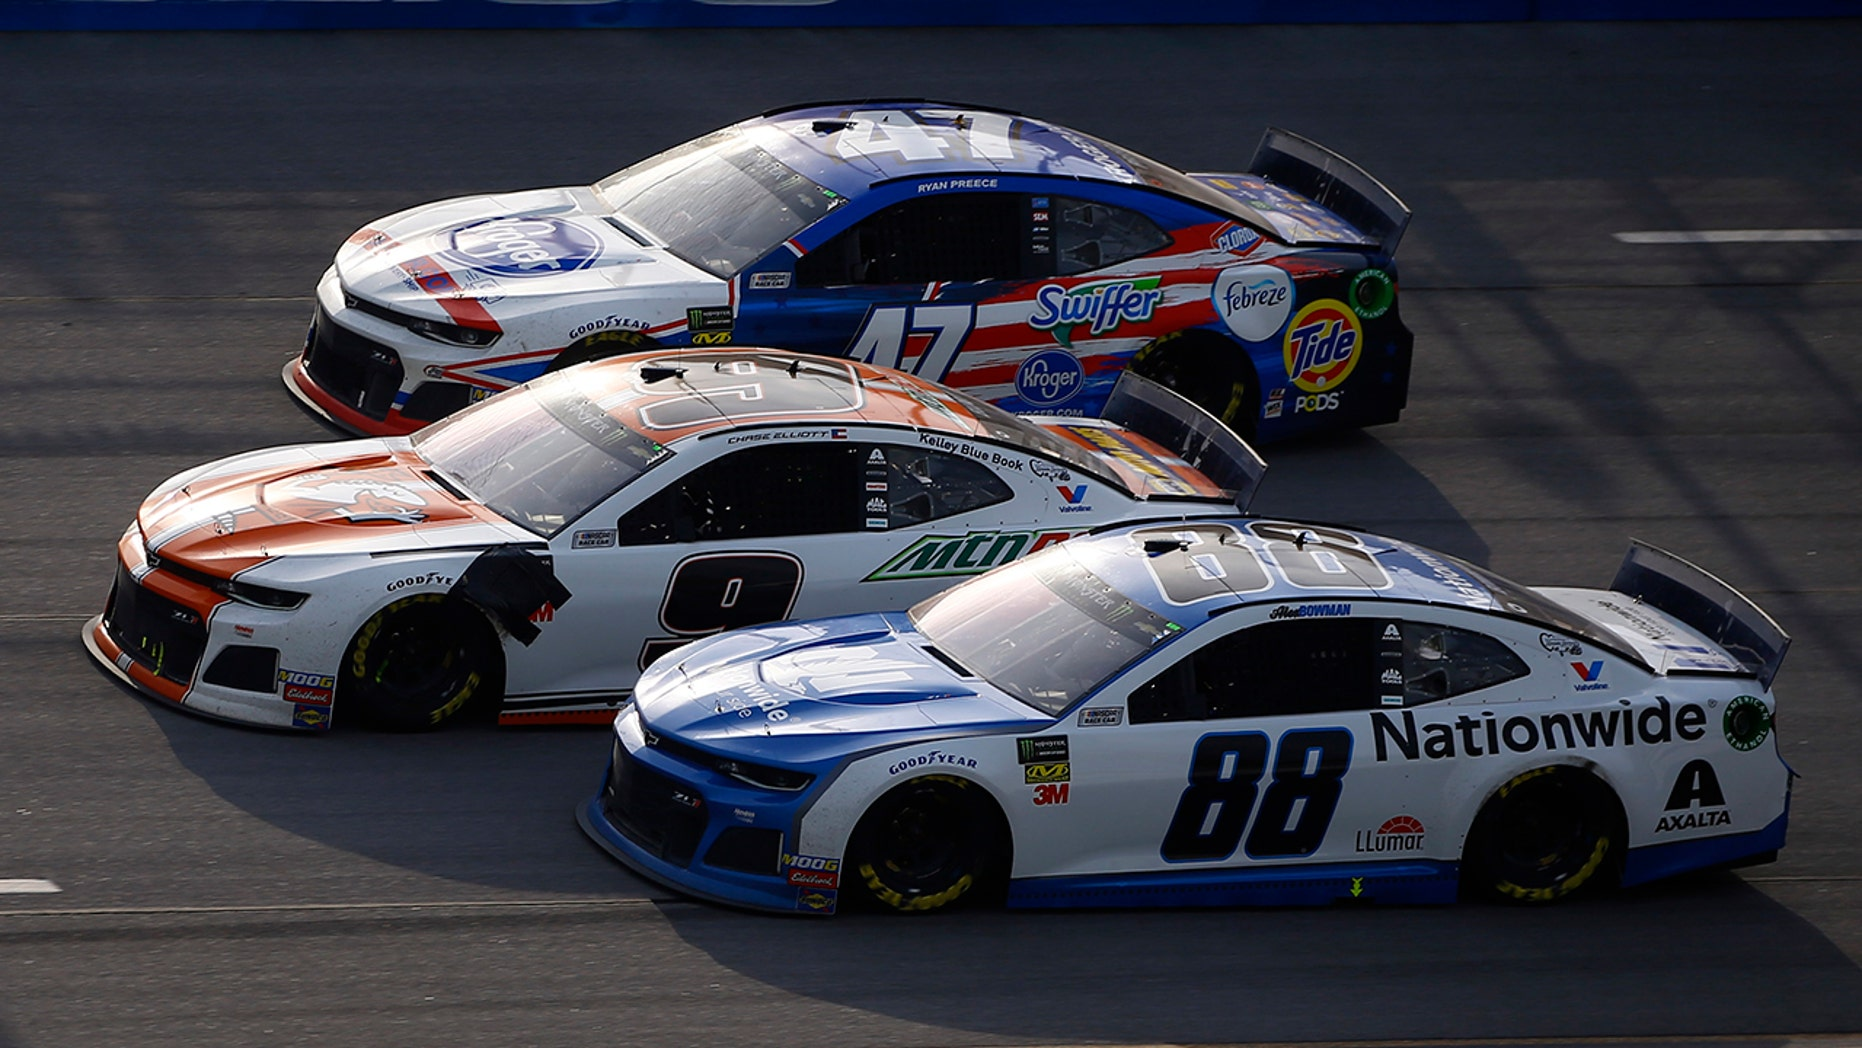 Chase Elliott (9) leads Alex Bowman (88) and Ryan Preece (47) to a finish line to win a NASCAR Cup Series automobile competition during Talladega Superspeedway, Sunday, Apr 28, 2019, in Talladega, Ala.